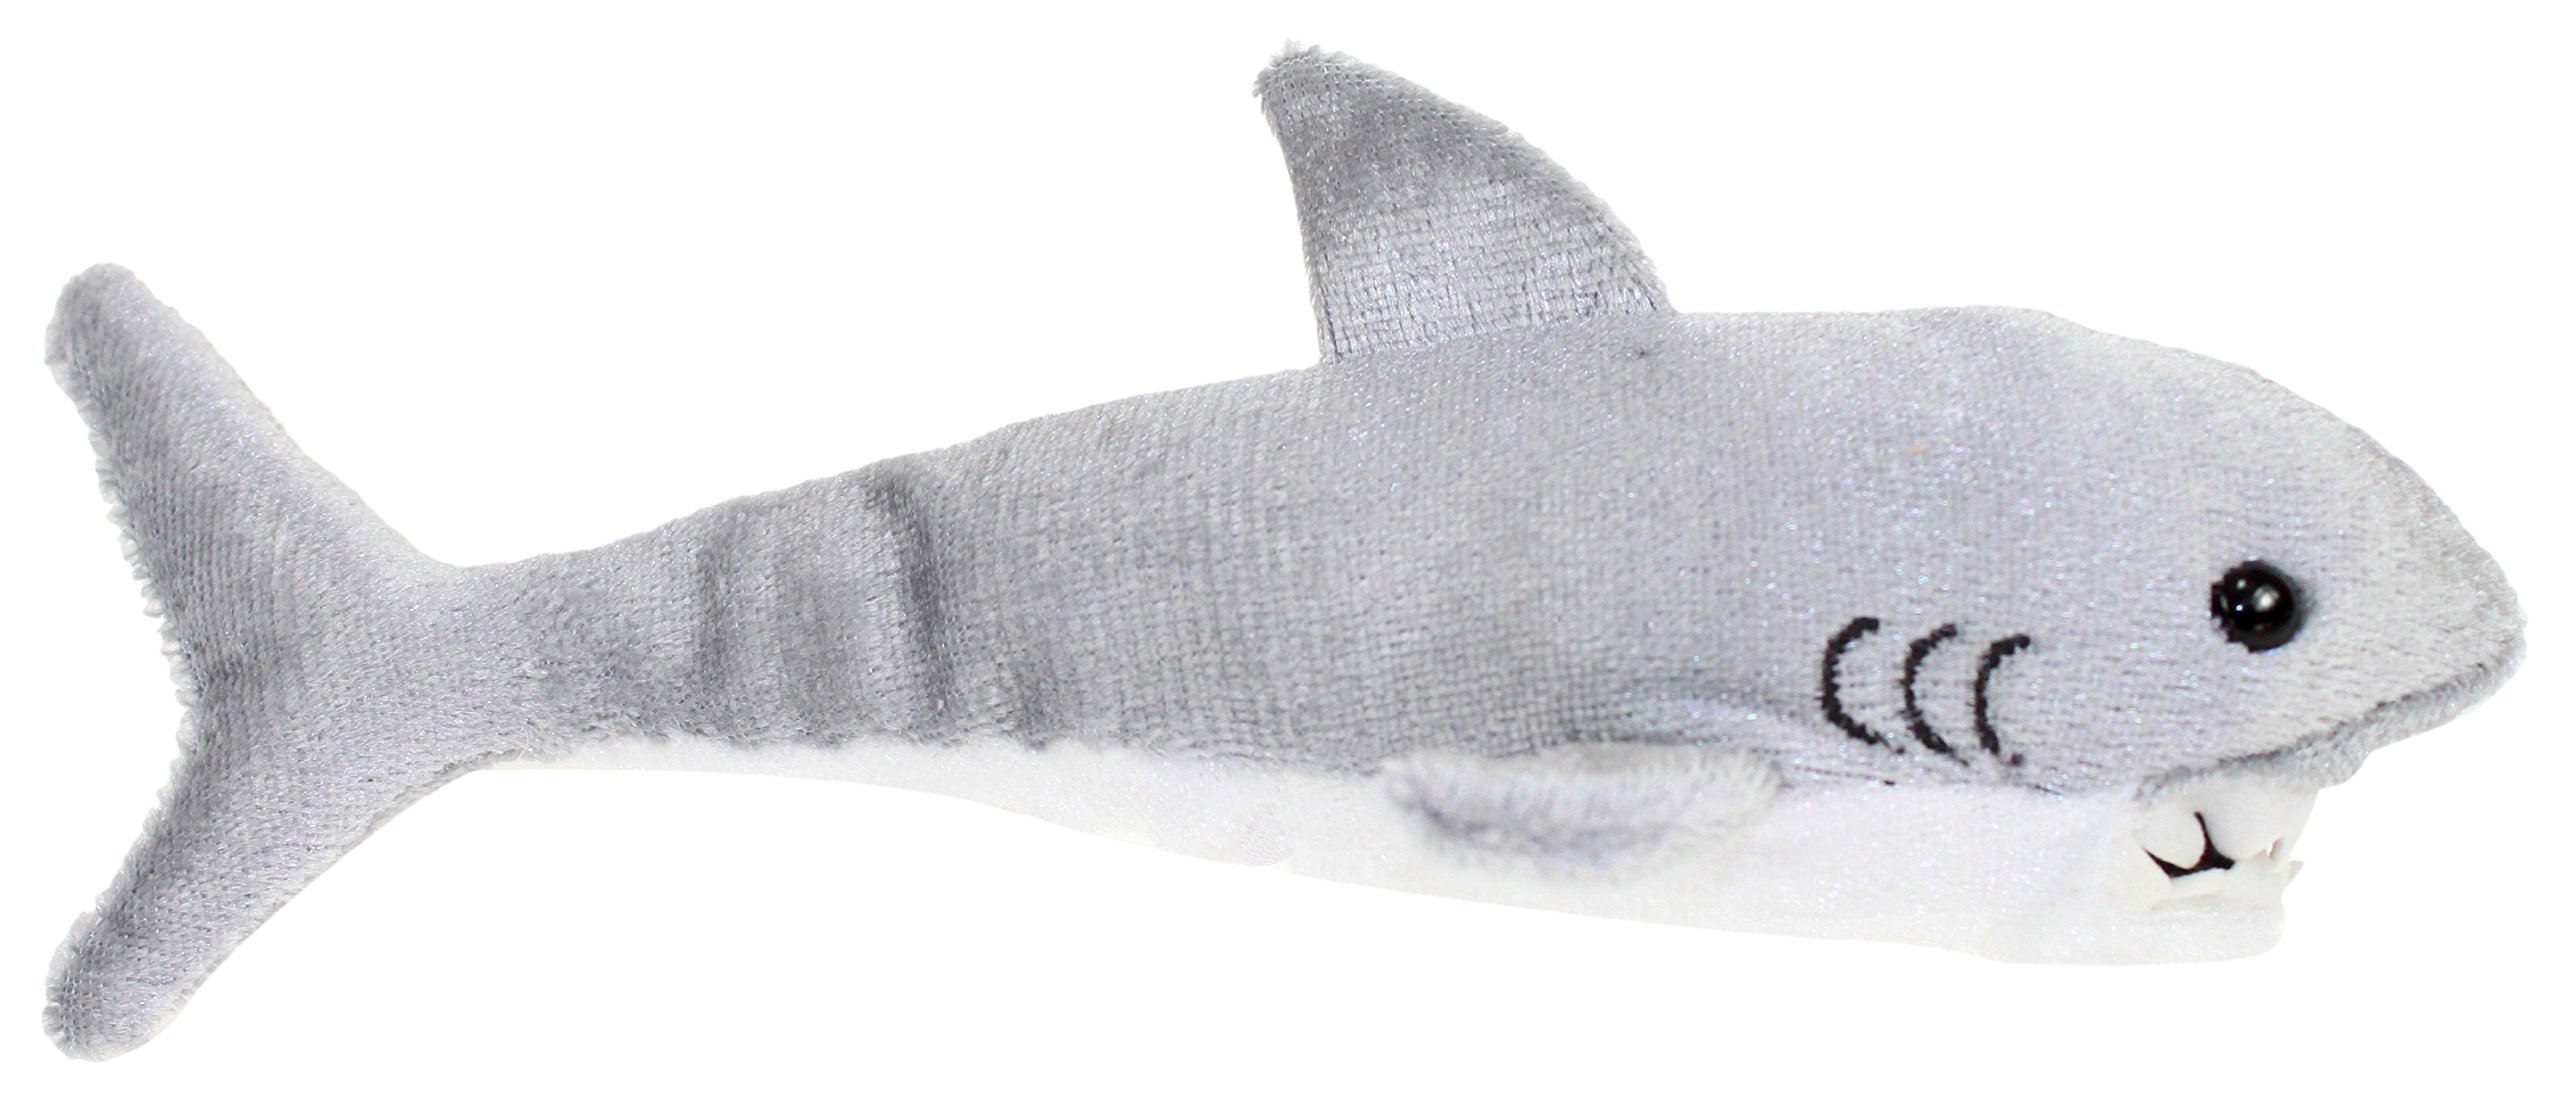 The Puppet Company Great Shark Finger Children Toys Puppets, White